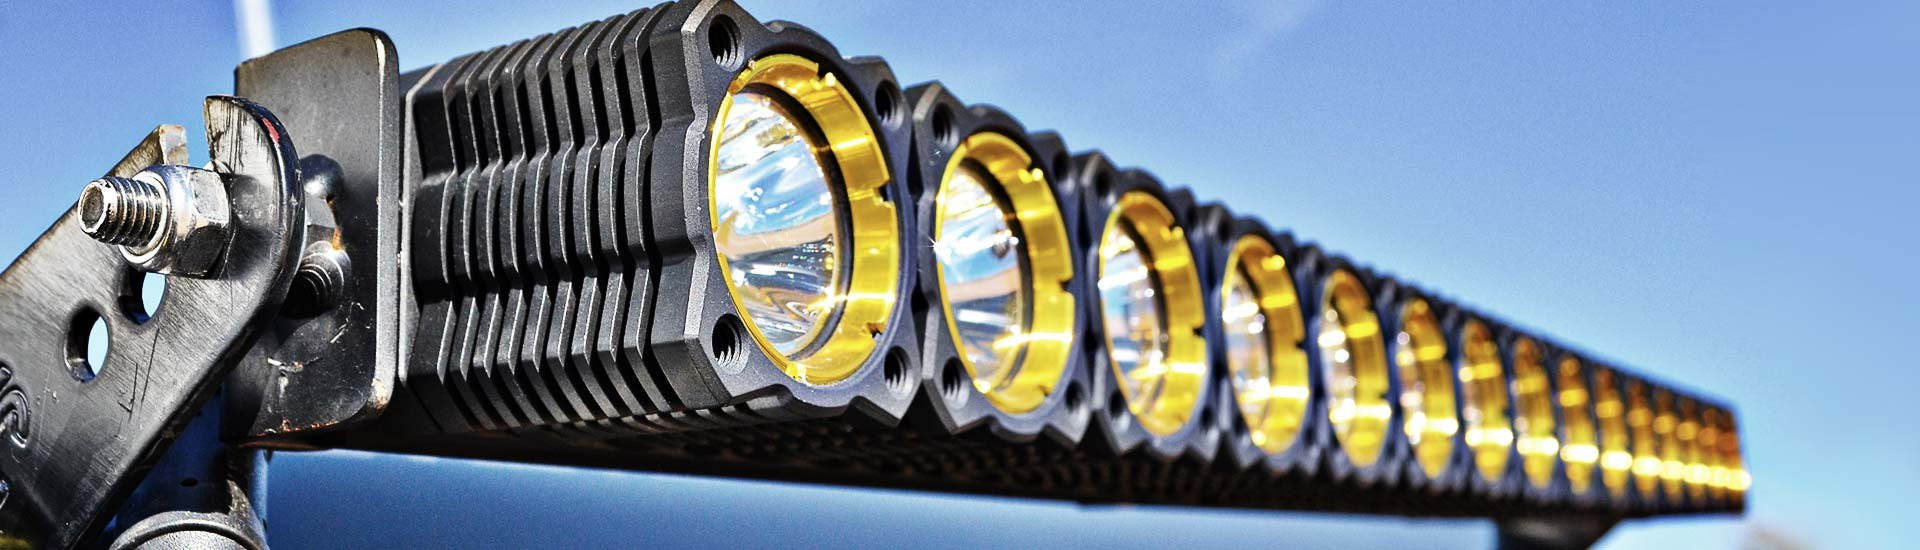 hight resolution of off road lights